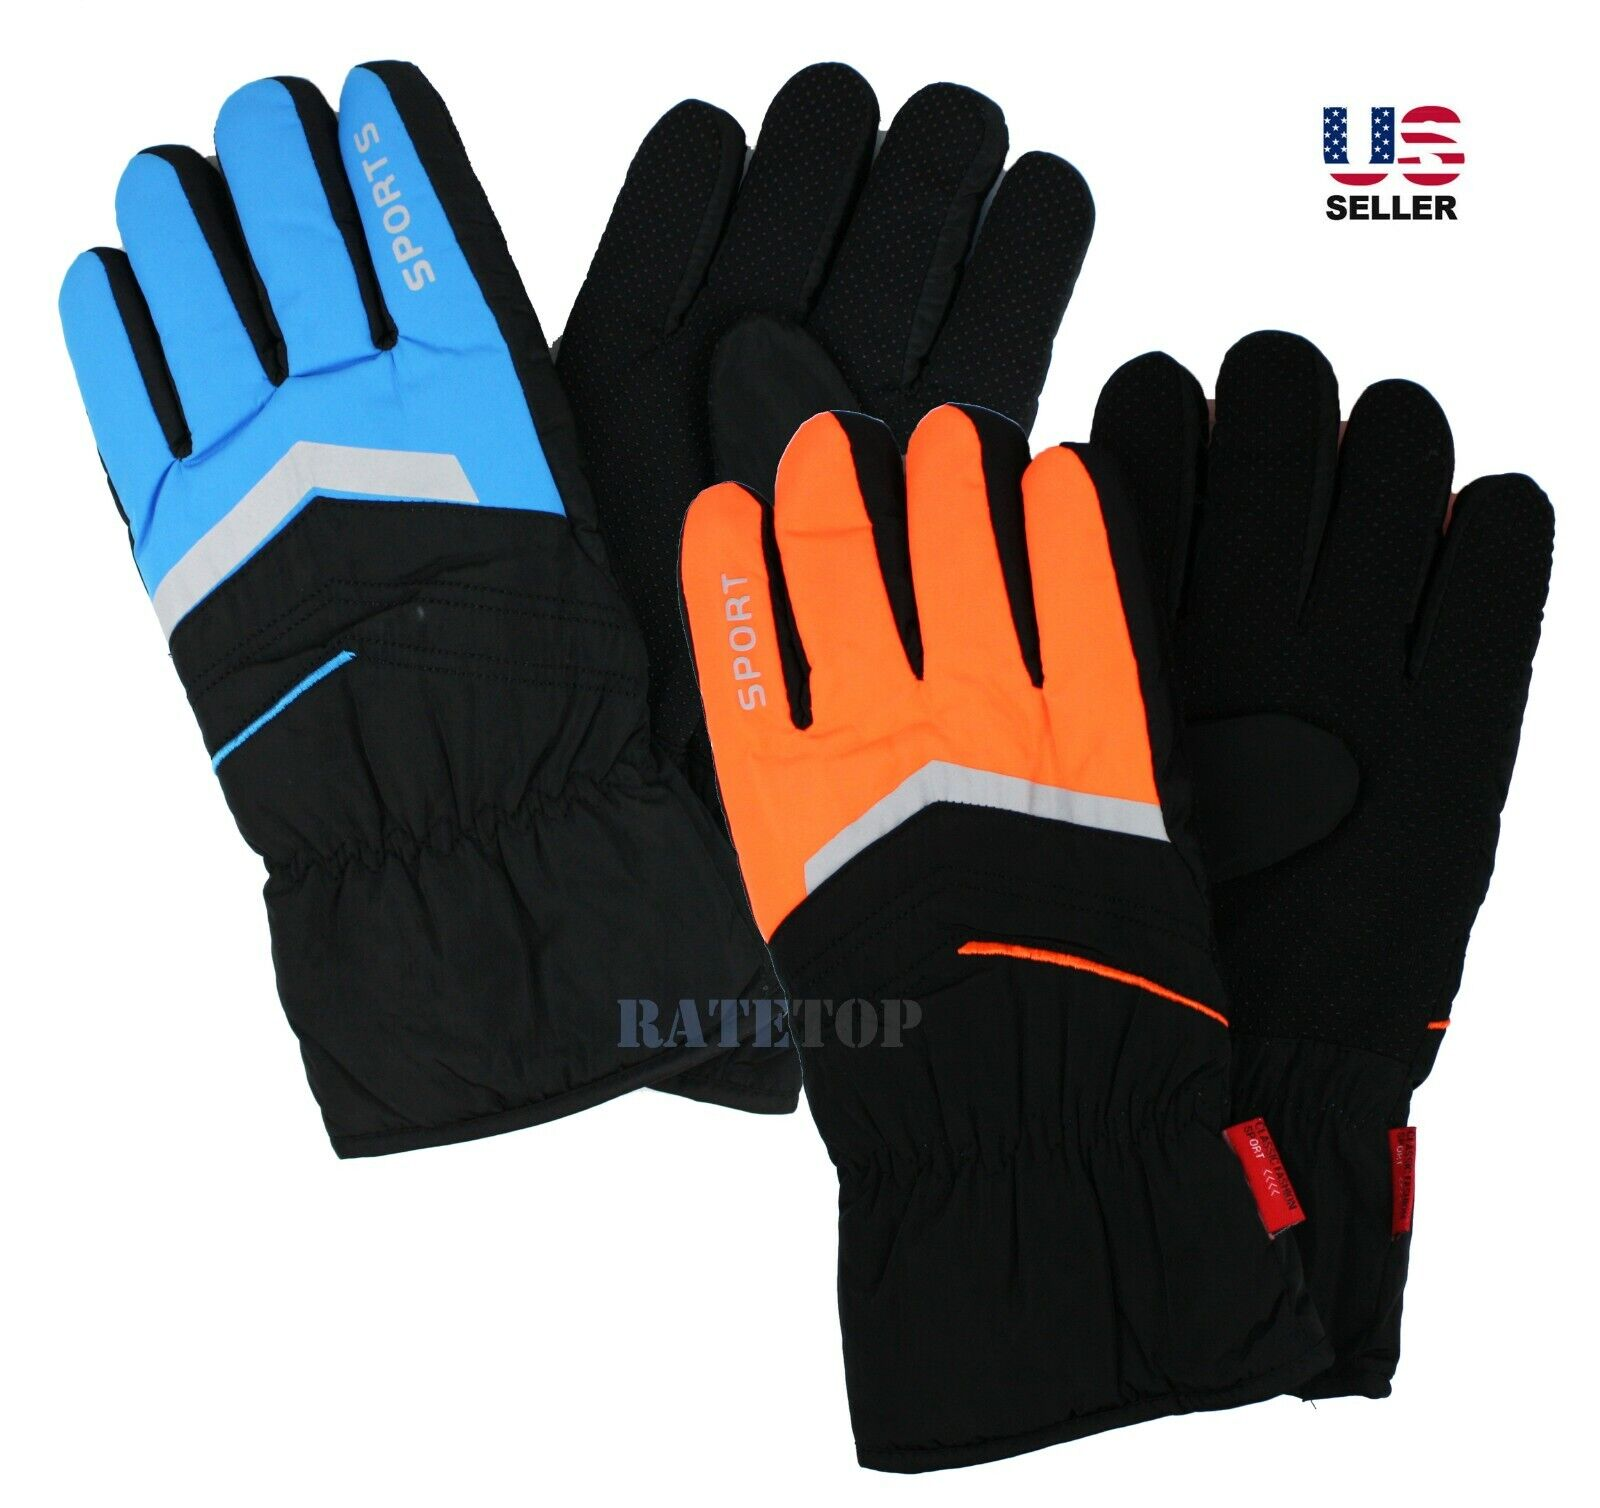 Mens Winter Thermal Fleece Lined Waterproof Reflective Snow Ski Gloves Mittens Clothing, Shoes & Accessories